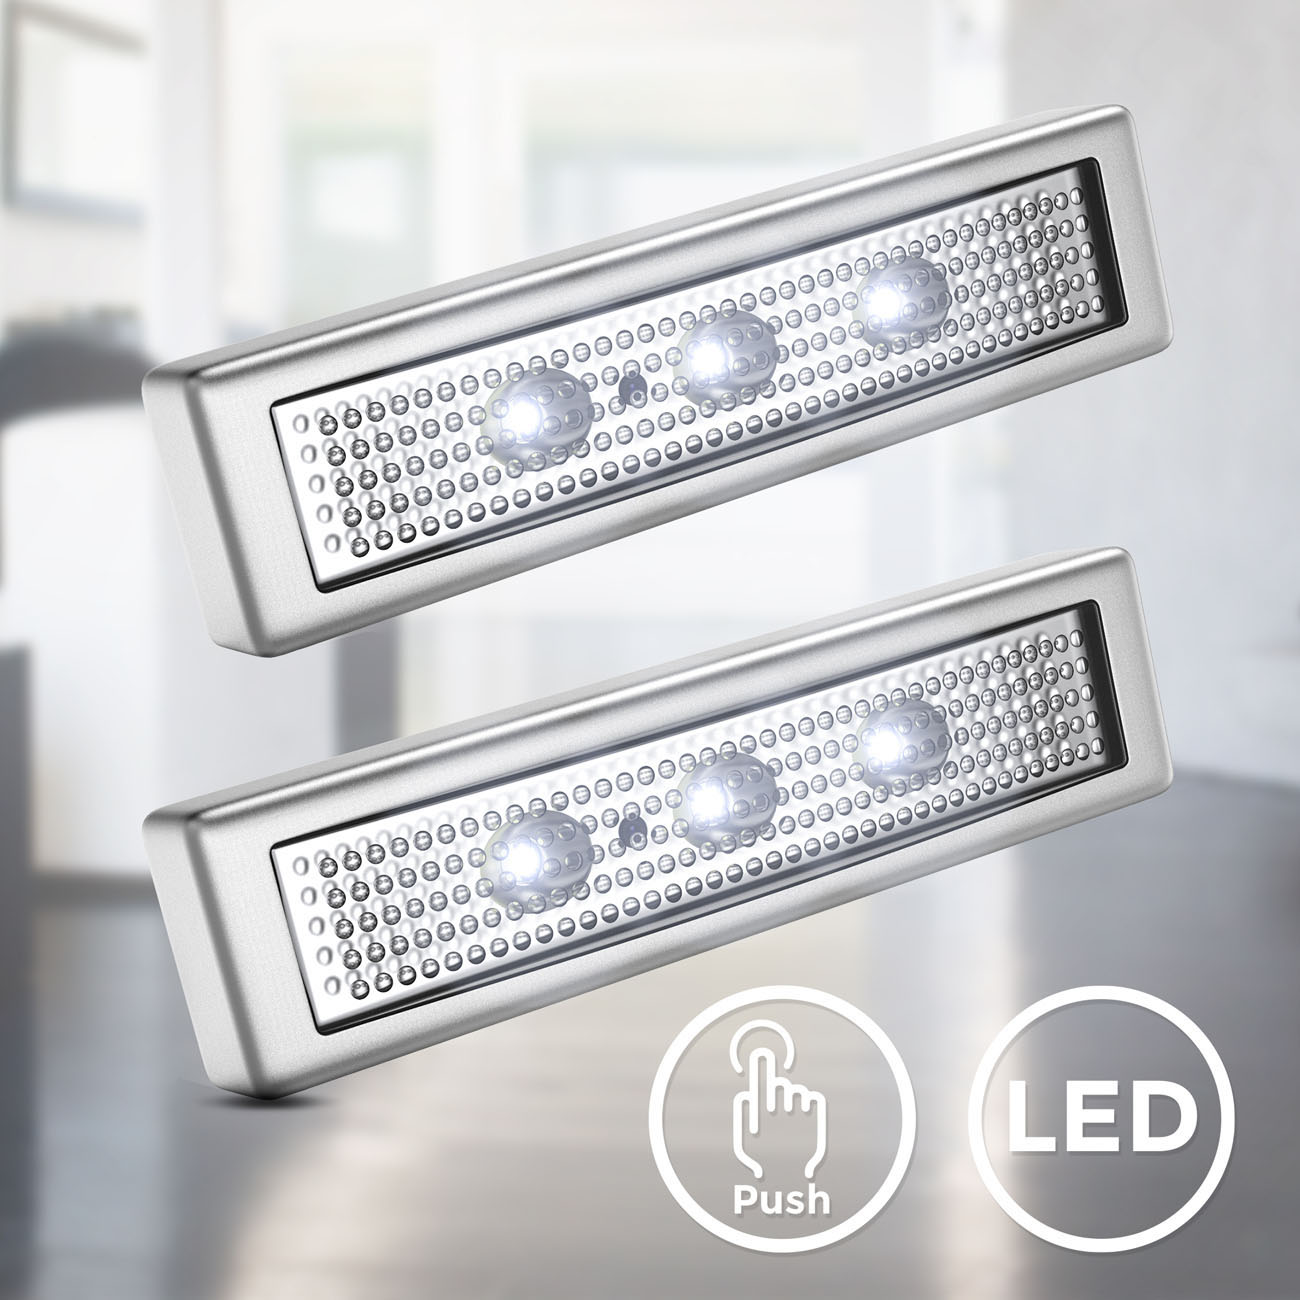 LED Push-Light mit Batteriebetrieb | 2er Set - 3